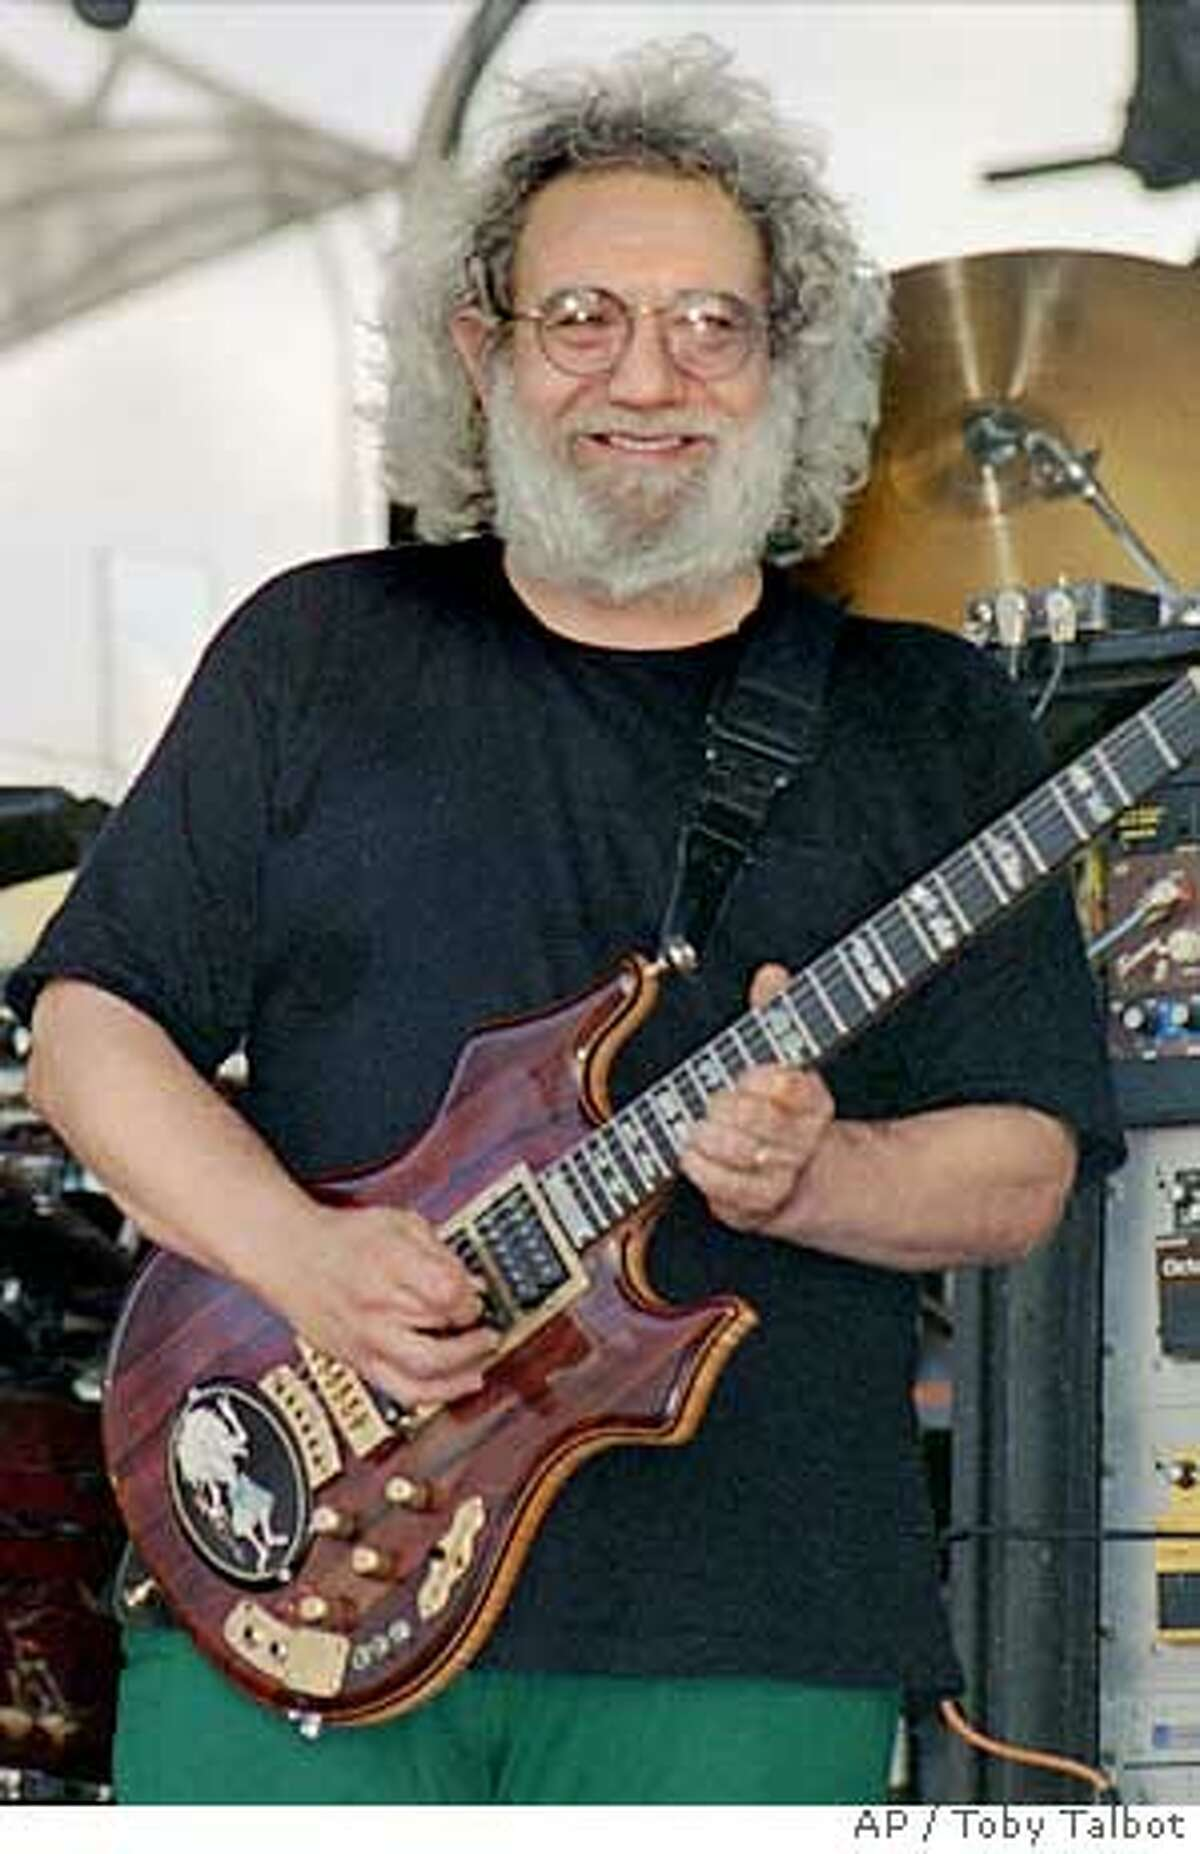 ** FILE ** Jerry Garcia of the Grateful Dead smiles as he plays in Highgate, Vt., in this July 1994 file photo. A nonprofit group hopes to raise more than $100,000 when it auctions a subzero degree freezer, stereo cabinets and other home appliances that once belonged to Jerry Garcia, lead guitarist of the rock band The Grateful Dead. The items, which also include toilets, cupboards and a dishwasher, will be available for bidding on the online auction site eBay from Dec. 18 through Dec. 24, 2005. (AP Photo/Toby Talbot) Ran on: 11-30-2005 Jerry Garcia, late lead guitarist of the Grateful Dead, lived in a mansion in Nicasio in the early 1990s. Three toilets from that home are among Garcias household items to be auction- ed on eBay. Ran on: 11-30-2005 Jerry Garcia, late lead guitarist of the Grateful Dead, lived in a mansion in Nicasio in the early 1990s. Three toilets from that home are among Garcias household items to be auction- ed on eBay.